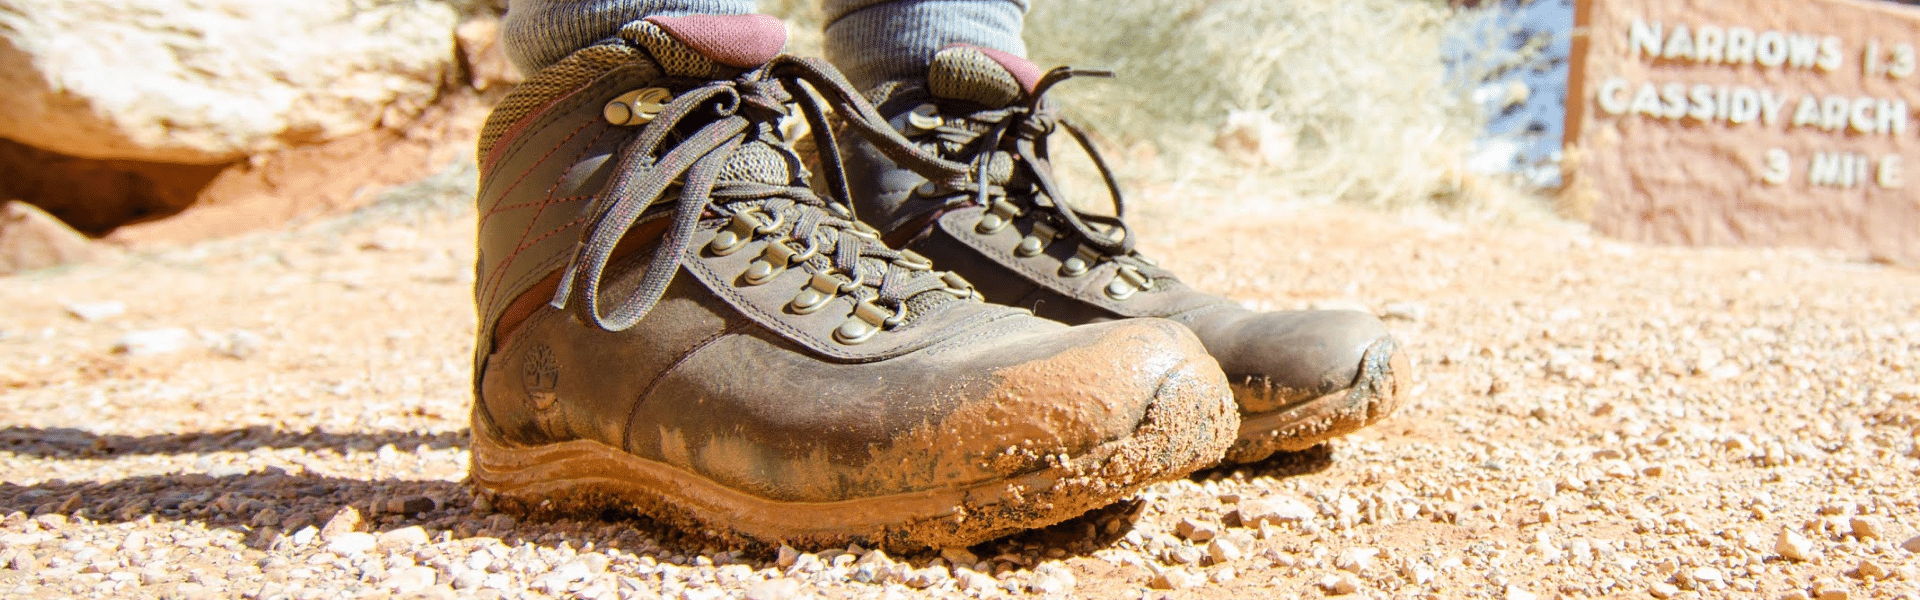 Best Hiking Boots Under 100 Reviewed in Detail